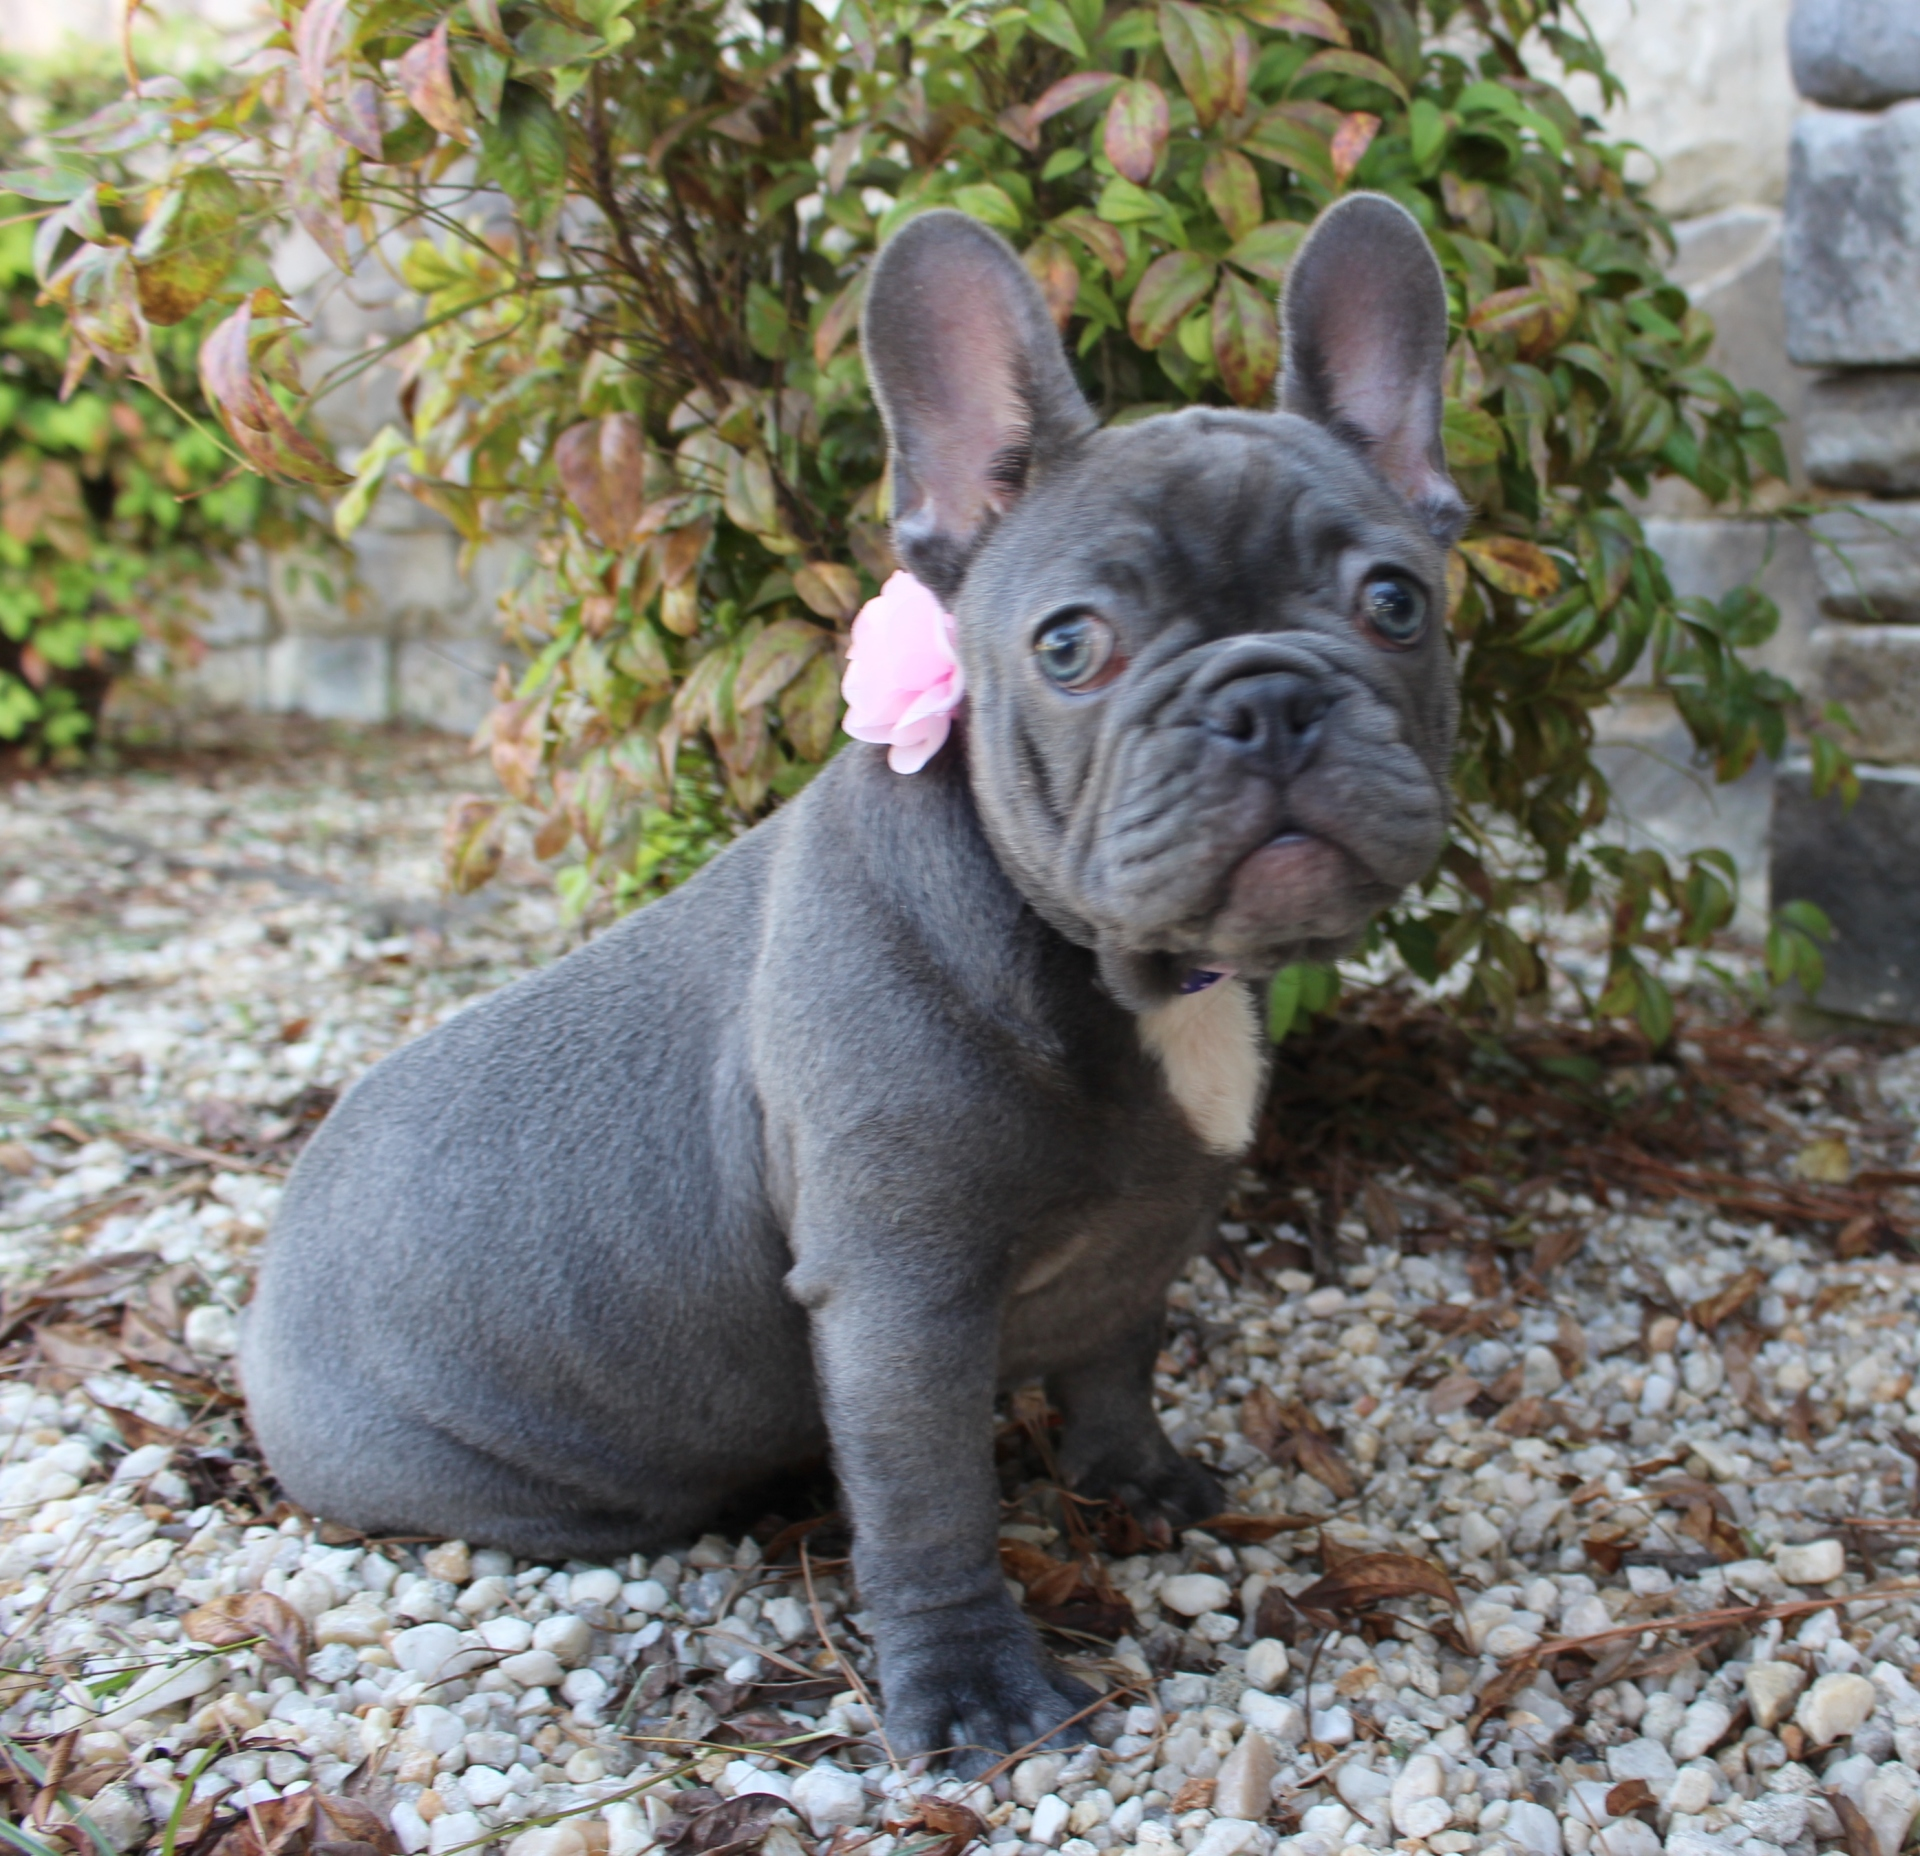 #FrenchBulldogPuppies #LilacFrenchBulldog #Frenchie #AvailablePuppies #AKCRegFrenchBulldog #SouthernTerritoryFrenchies #Precious